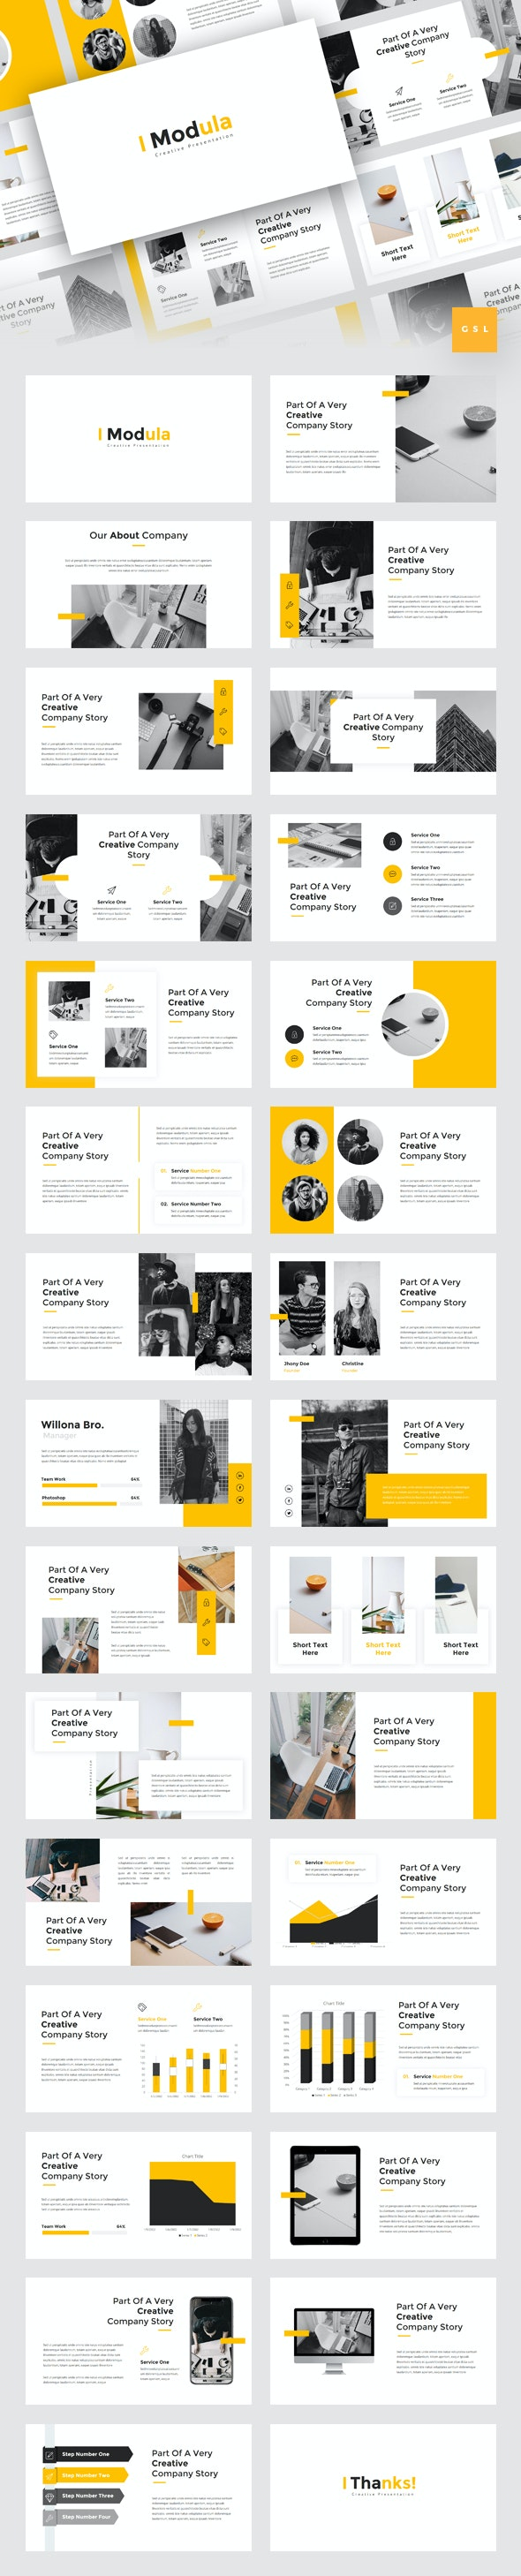 Modula - Creative Google Slides Template - Google Slides Presentation Templates